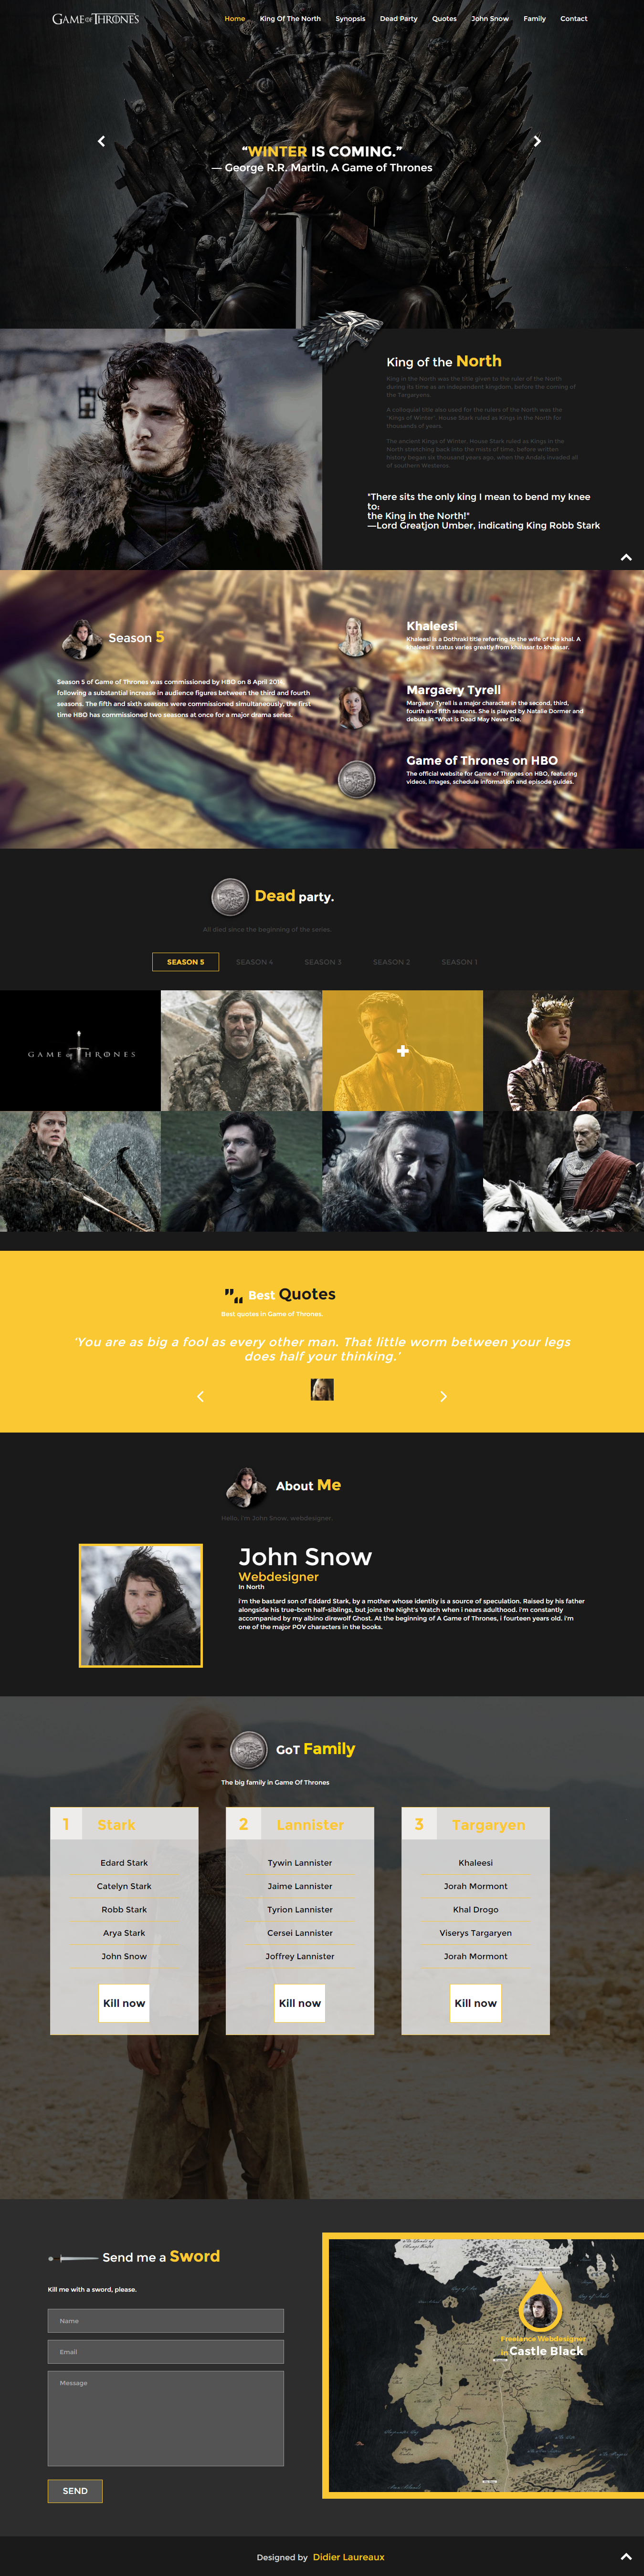 Game of thrones free css responsive template